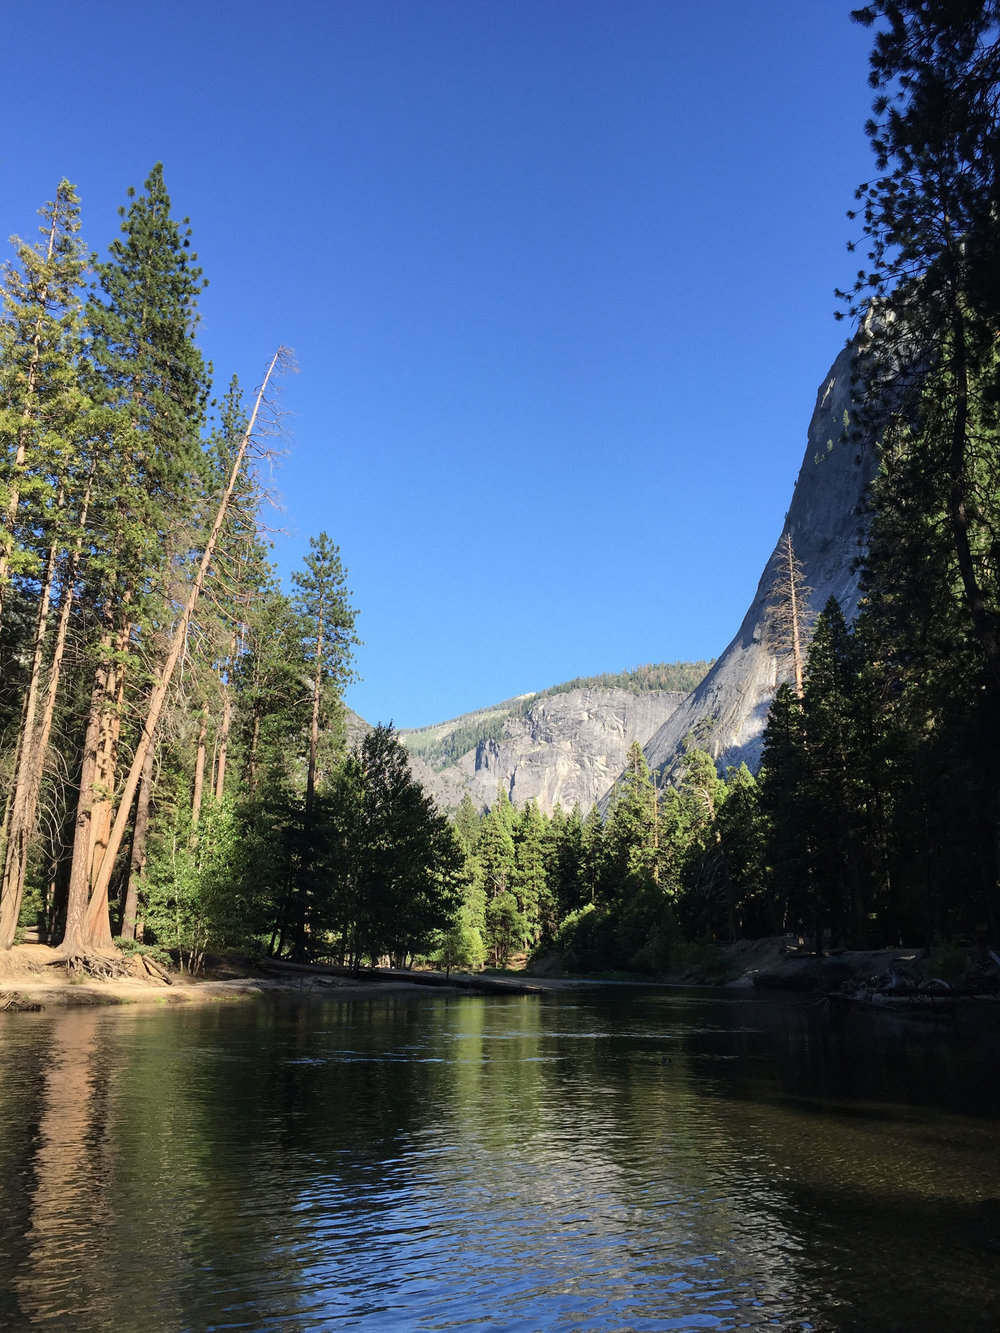 Merced River, Yosemite National Park, California, 2016.